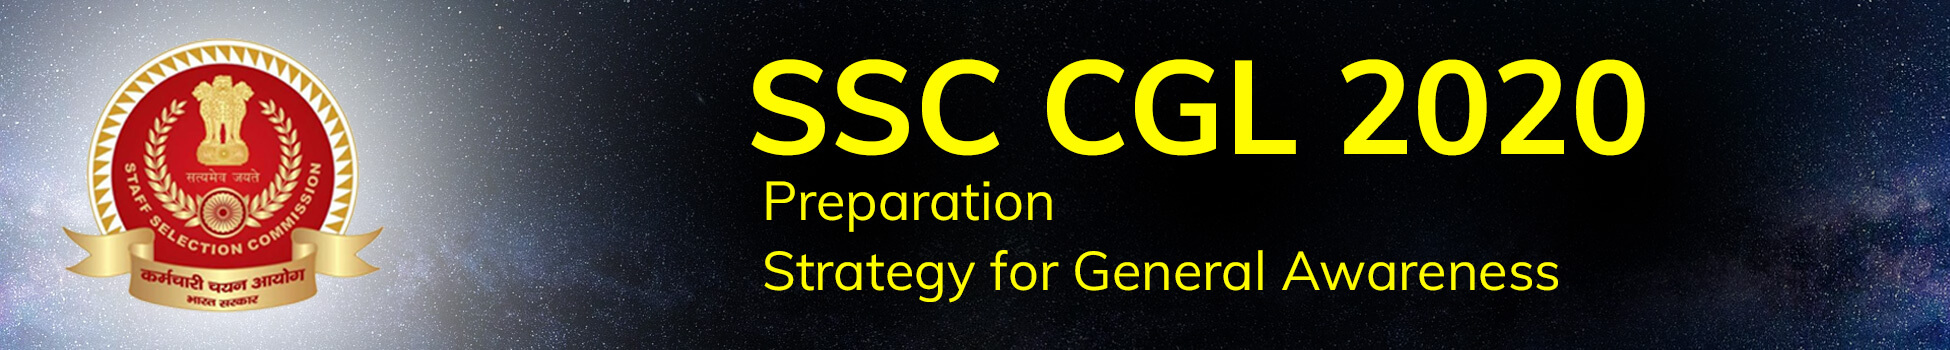 SSC CGL 2020 Preparation Strategy for General Awareness